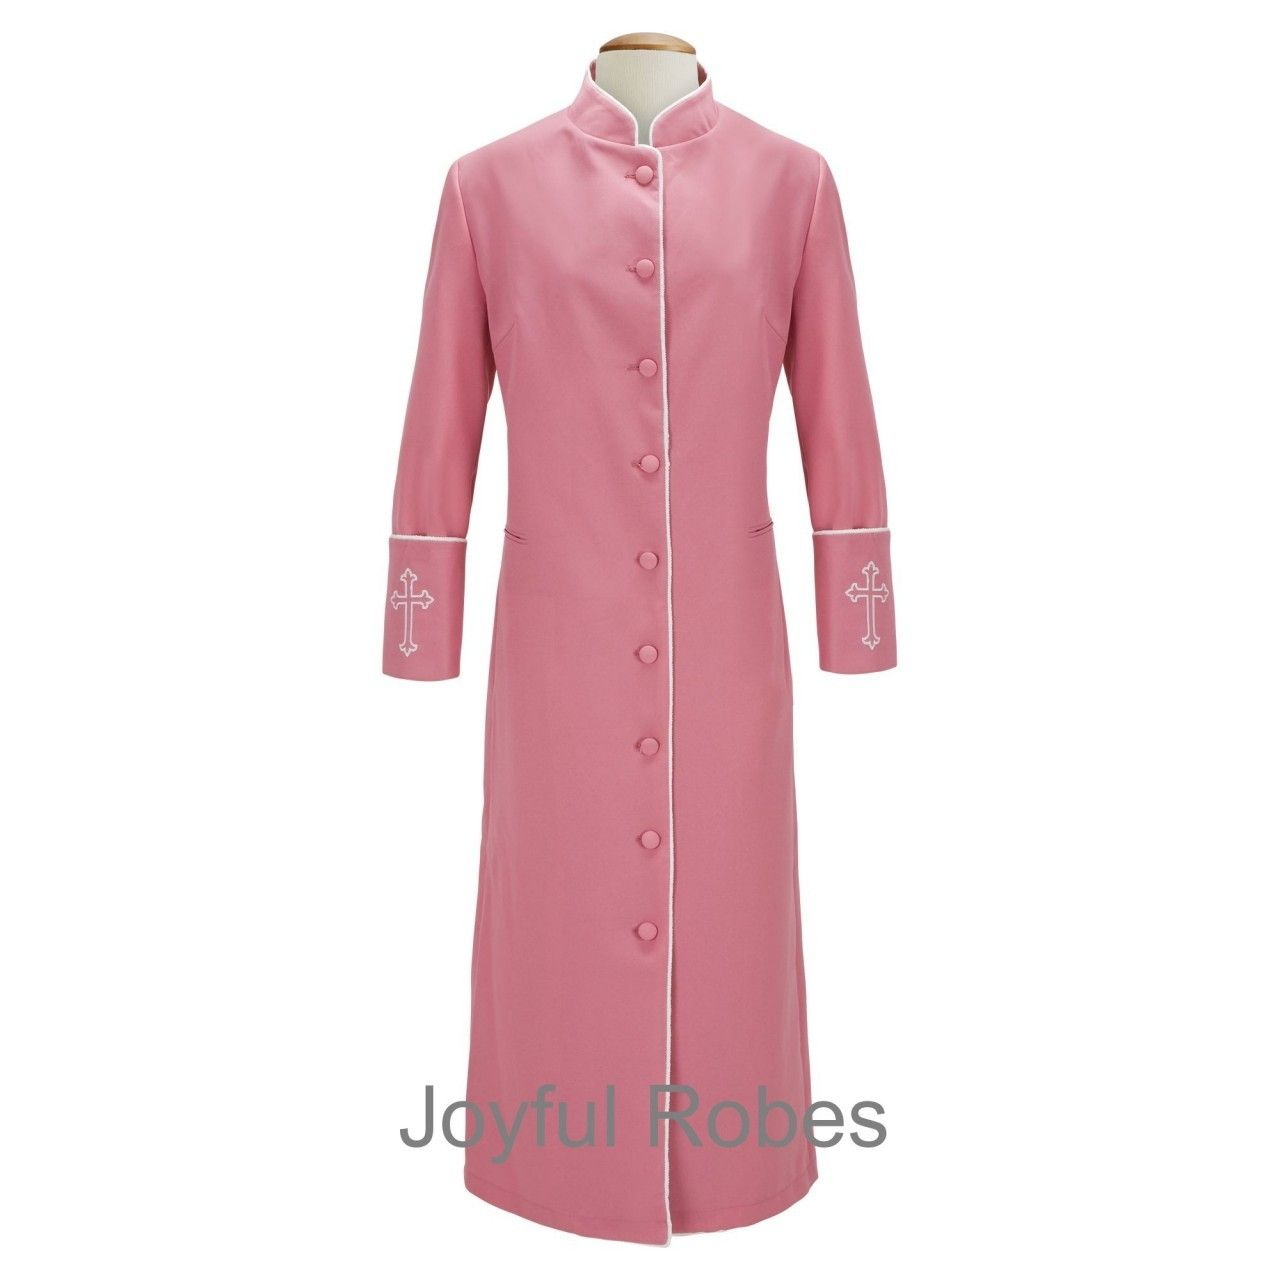 clergy robes for women womens rose pink white clergy robe clergy cassock ladies clergy. Black Bedroom Furniture Sets. Home Design Ideas